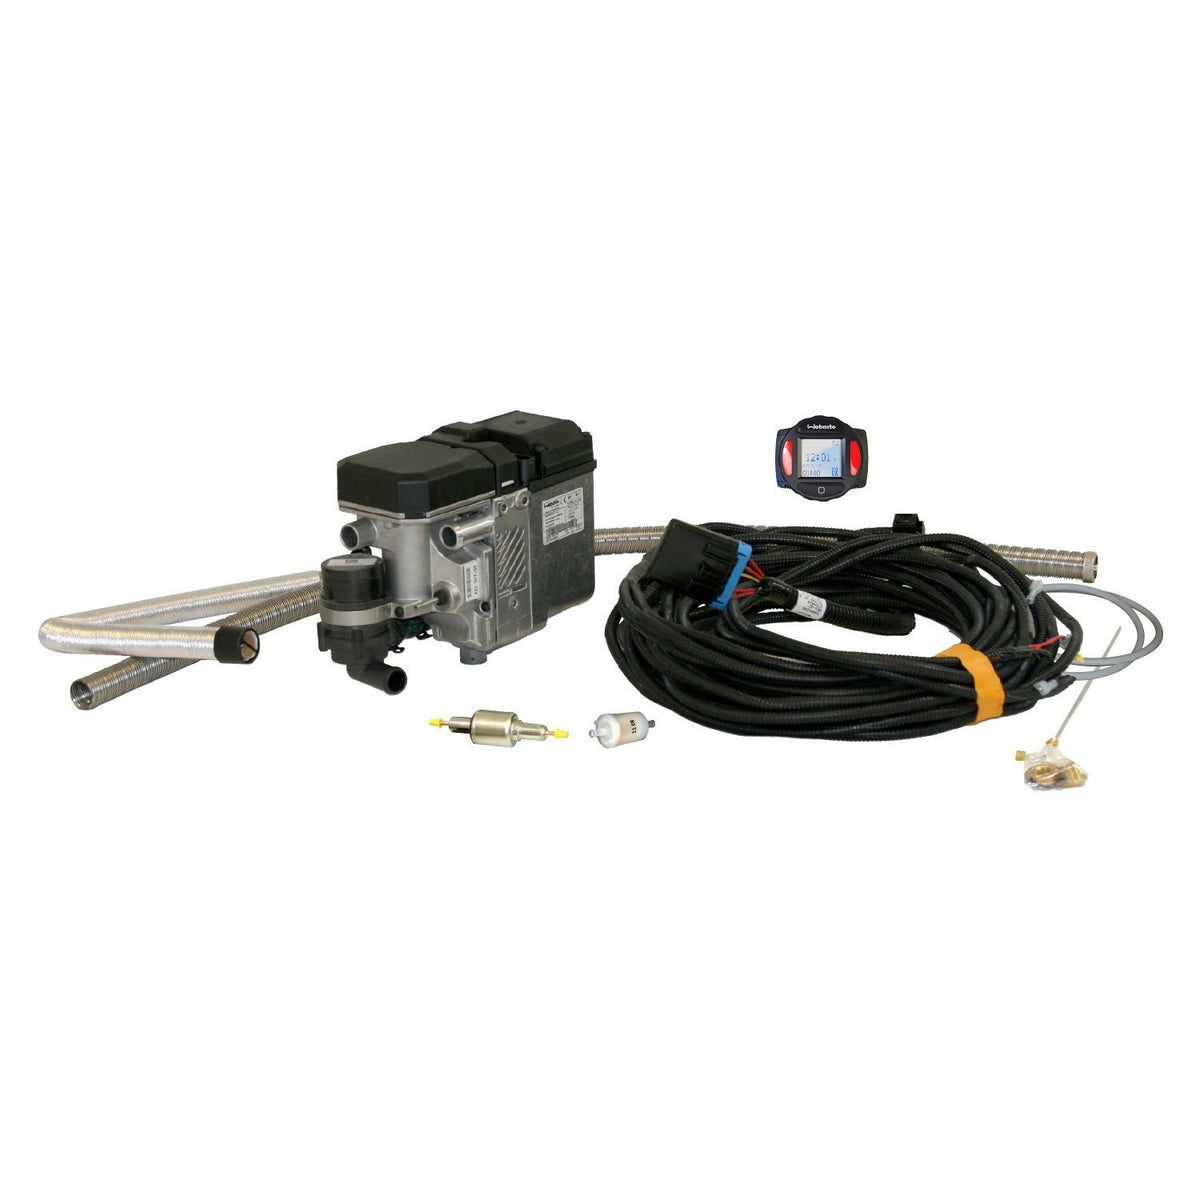 webasto thermo top c heater diesel kit with smartemp. Black Bedroom Furniture Sets. Home Design Ideas